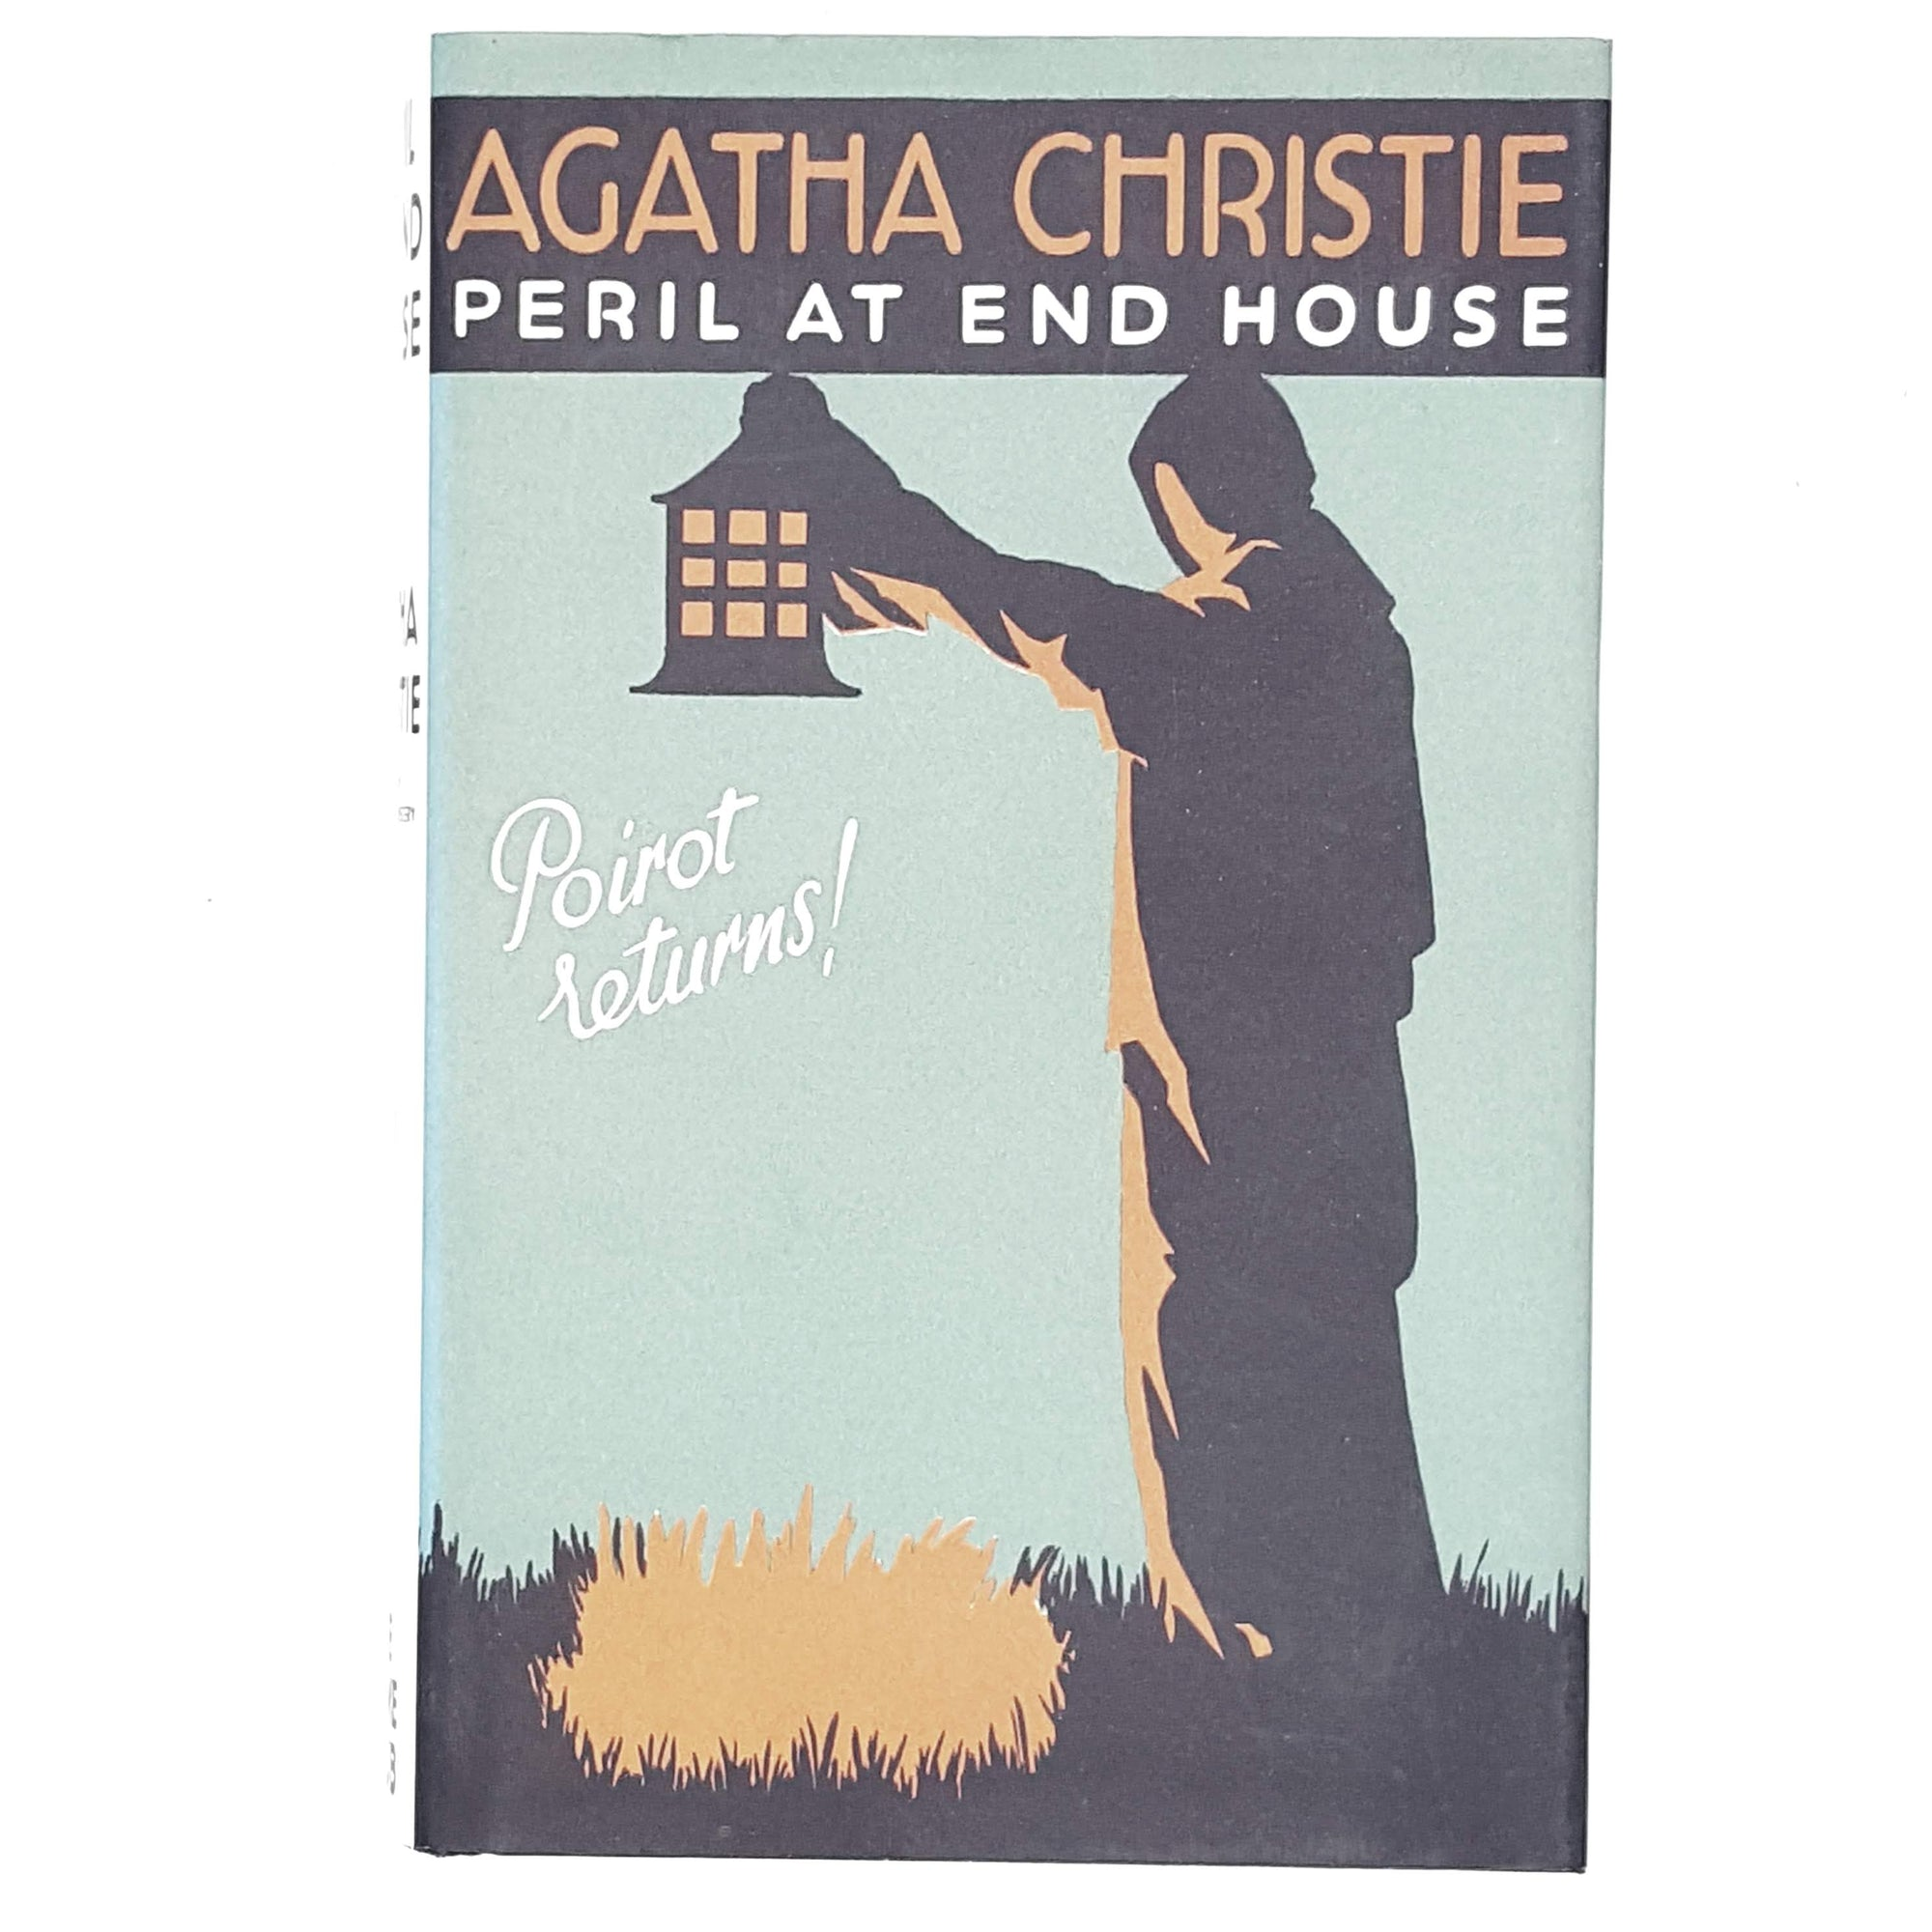 green-peril-agatha-christie-crime-vintage-book-country-house-library